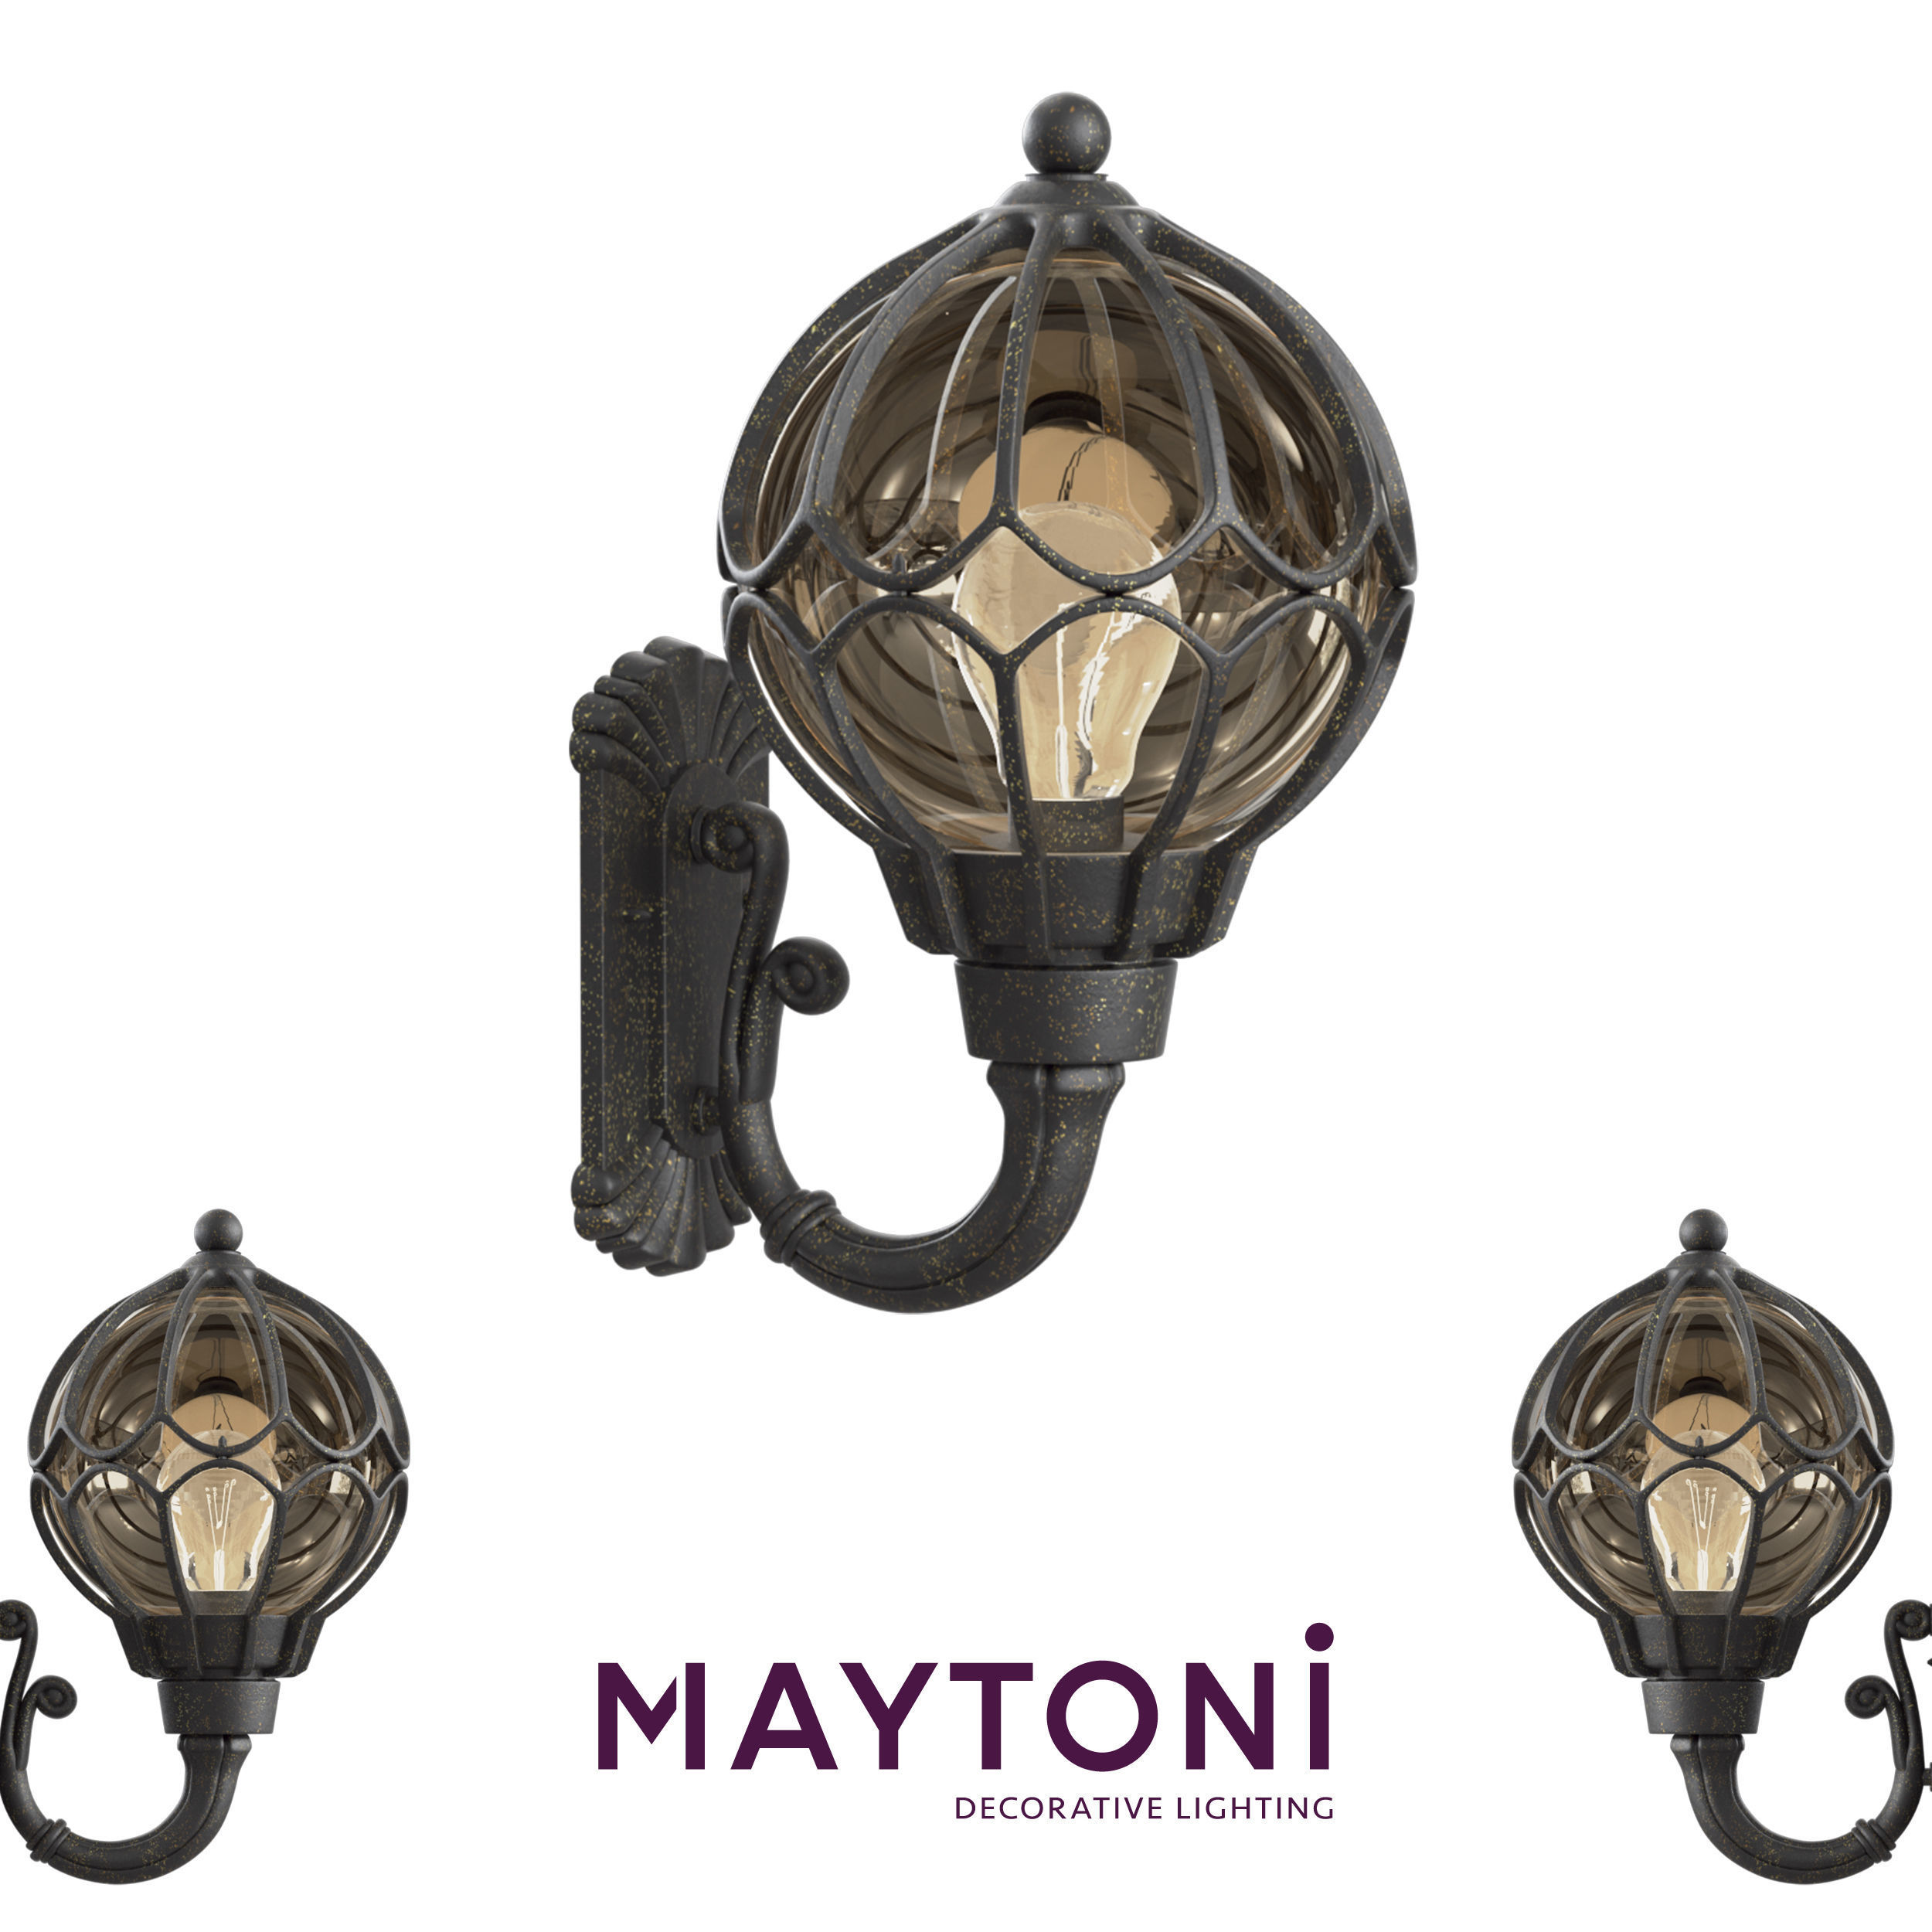 Garden Lamp 3d Model: Wall Lamp Champs Elysees S110-26-01-R Maytoni Outdoor 3D